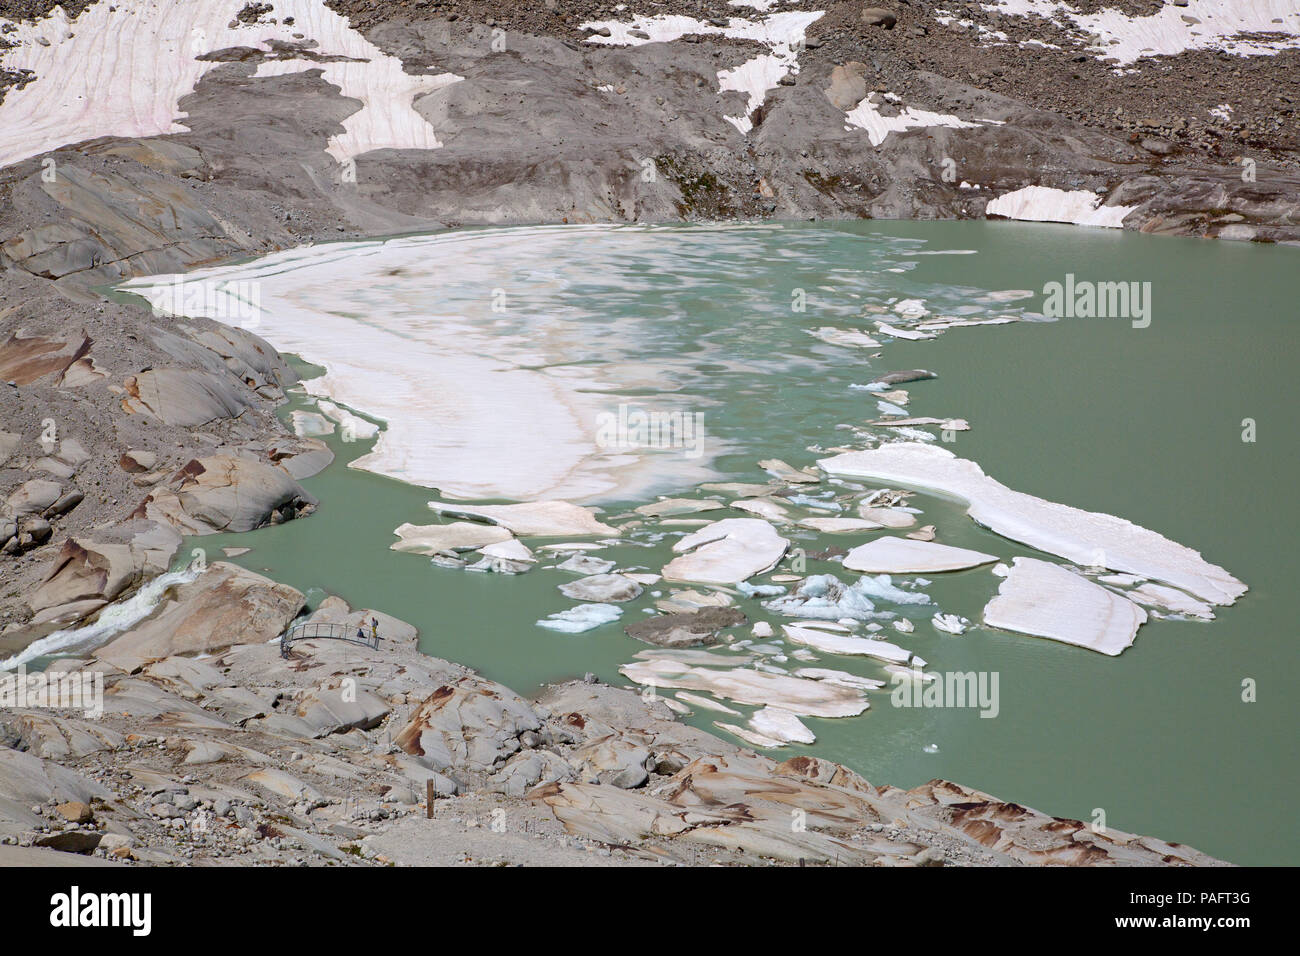 Rhone glacier, source of Rhone river, melting and retreating due to global warming. Rhone glacier is loosing up to 2 meters in length every year. Stock Photo